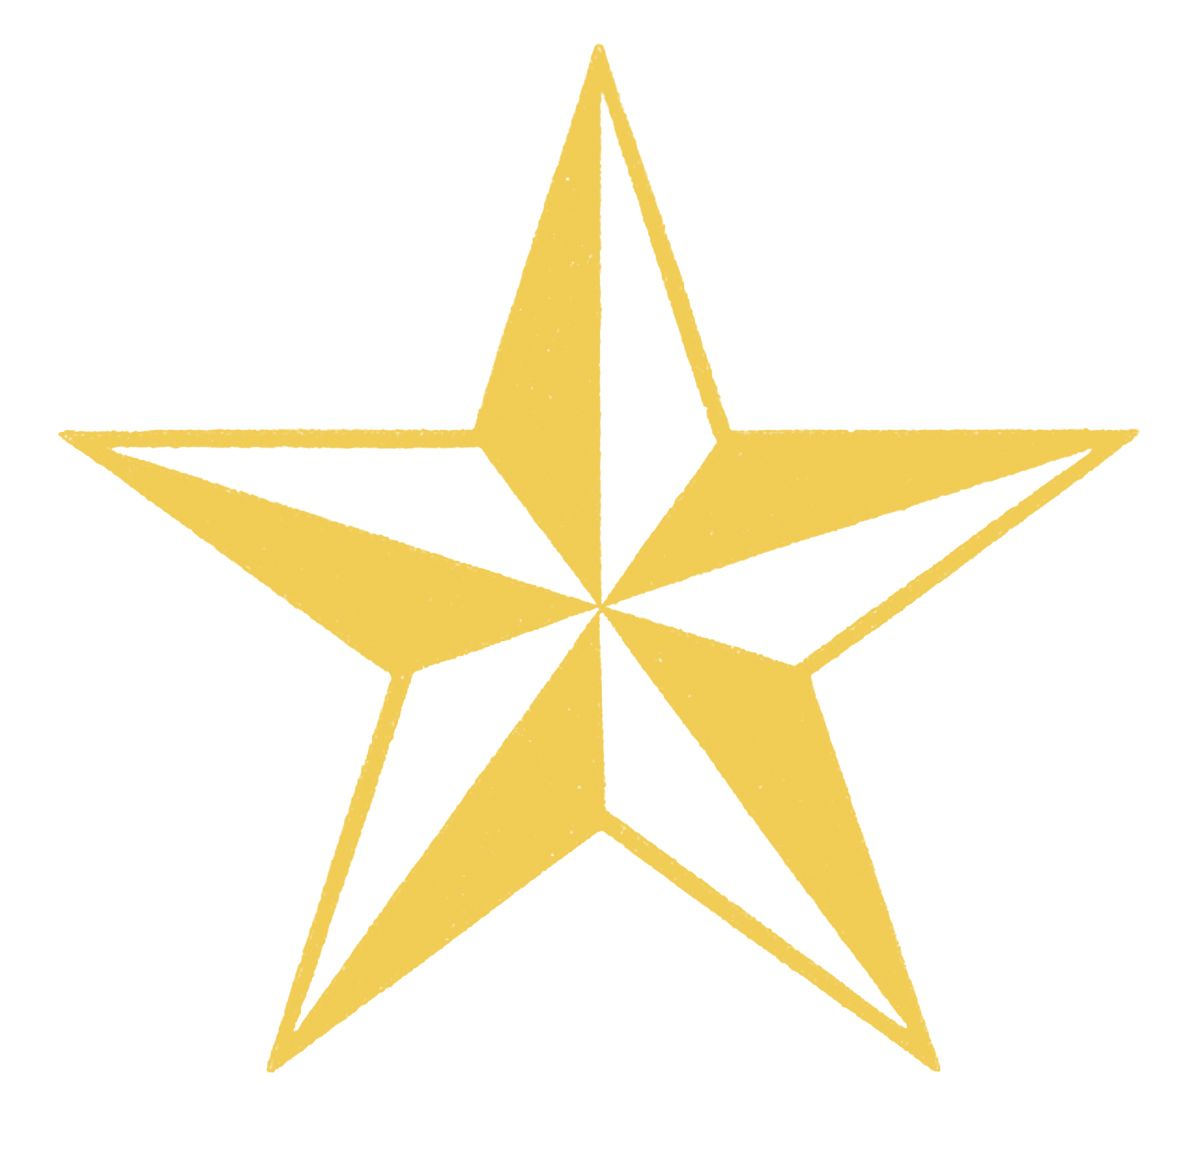 free star clipart images for teachers students web designers crafters etc to use in projects printables reports  [ 1200 x 1159 Pixel ]